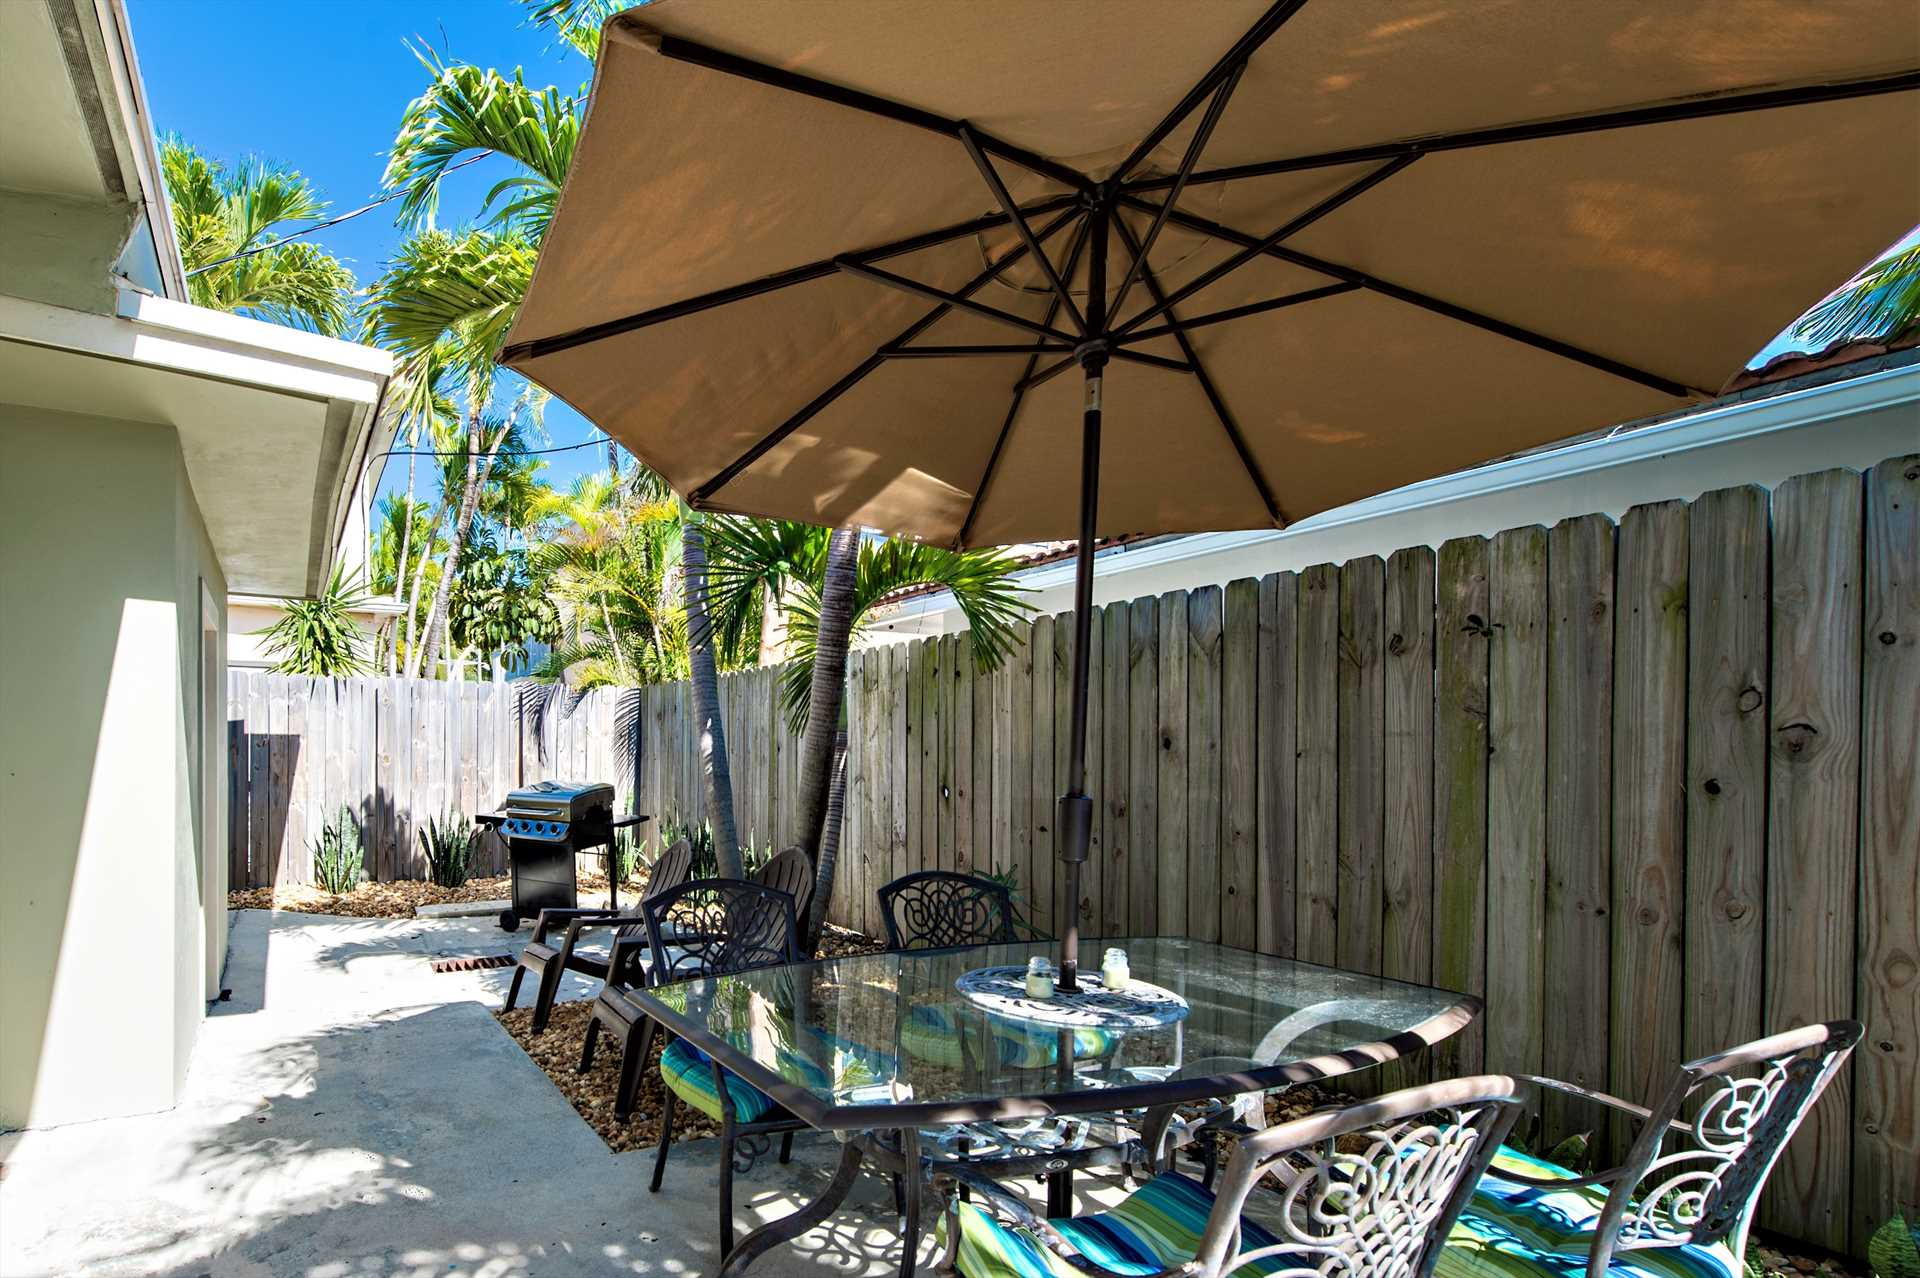 Dine at one of the patio tables and enjoy the South Florida